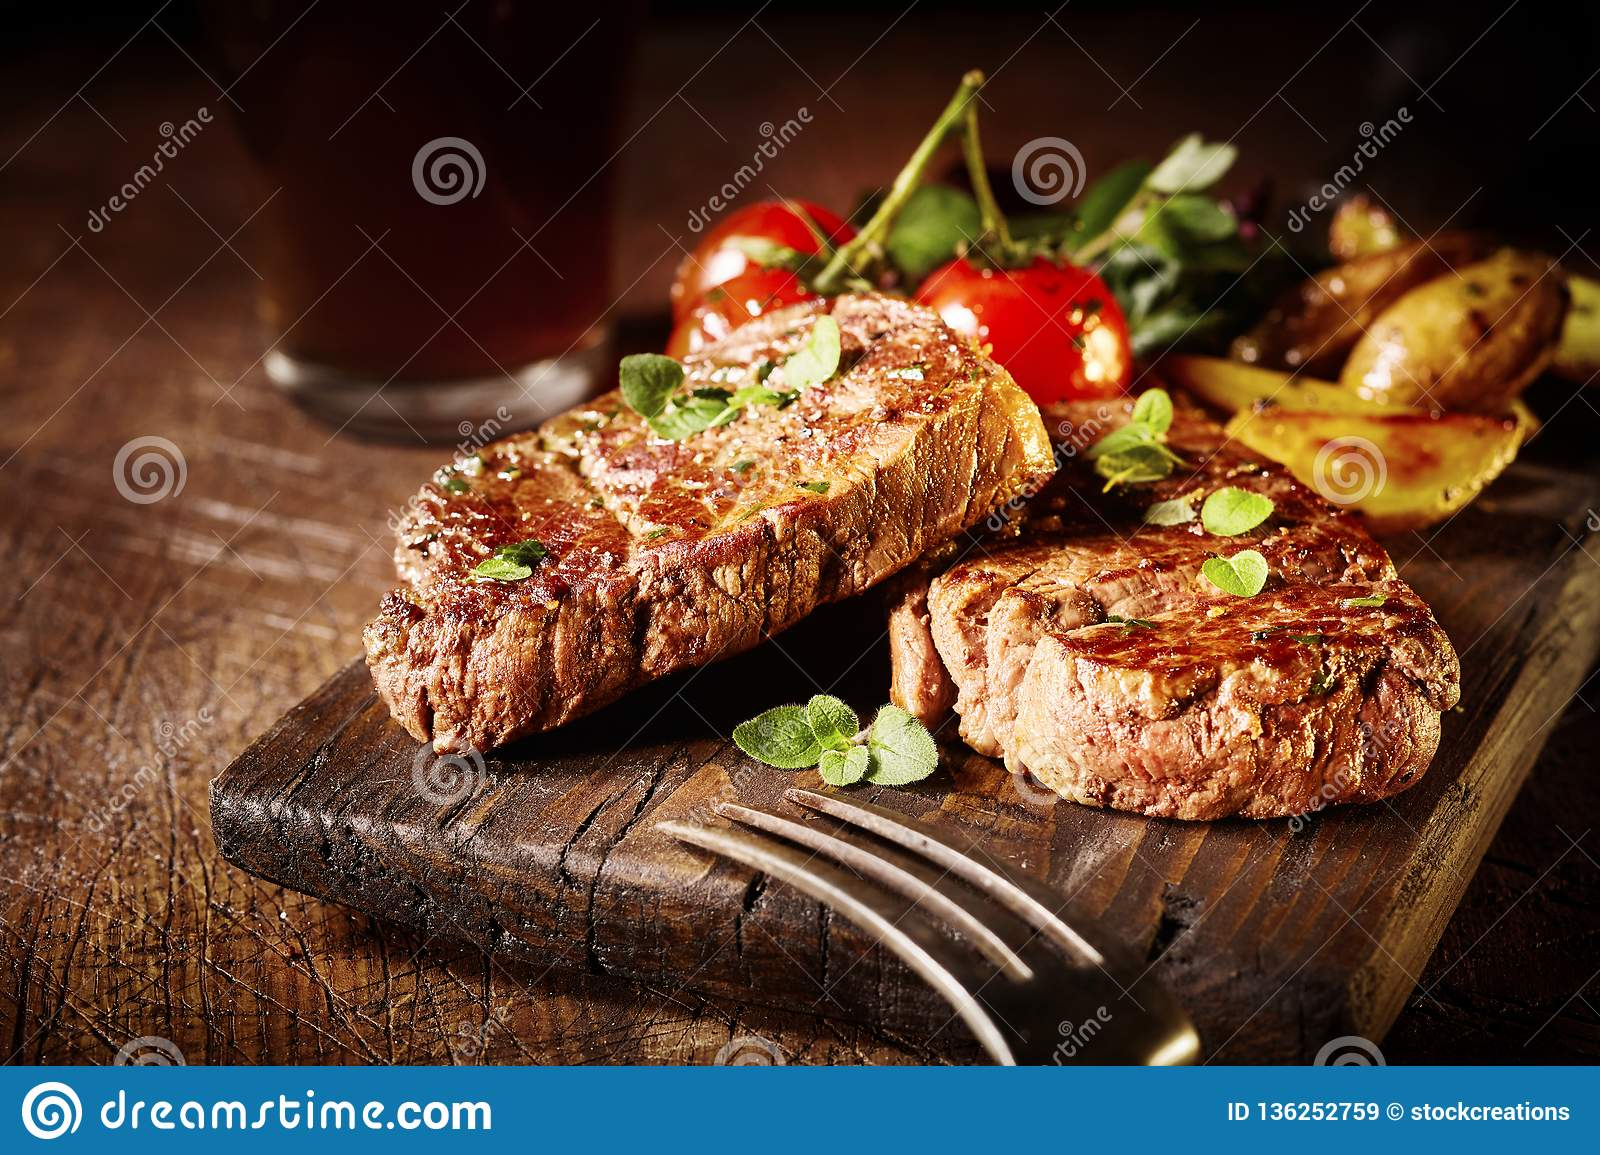 Thick tender roasted or grilled fillet medallions